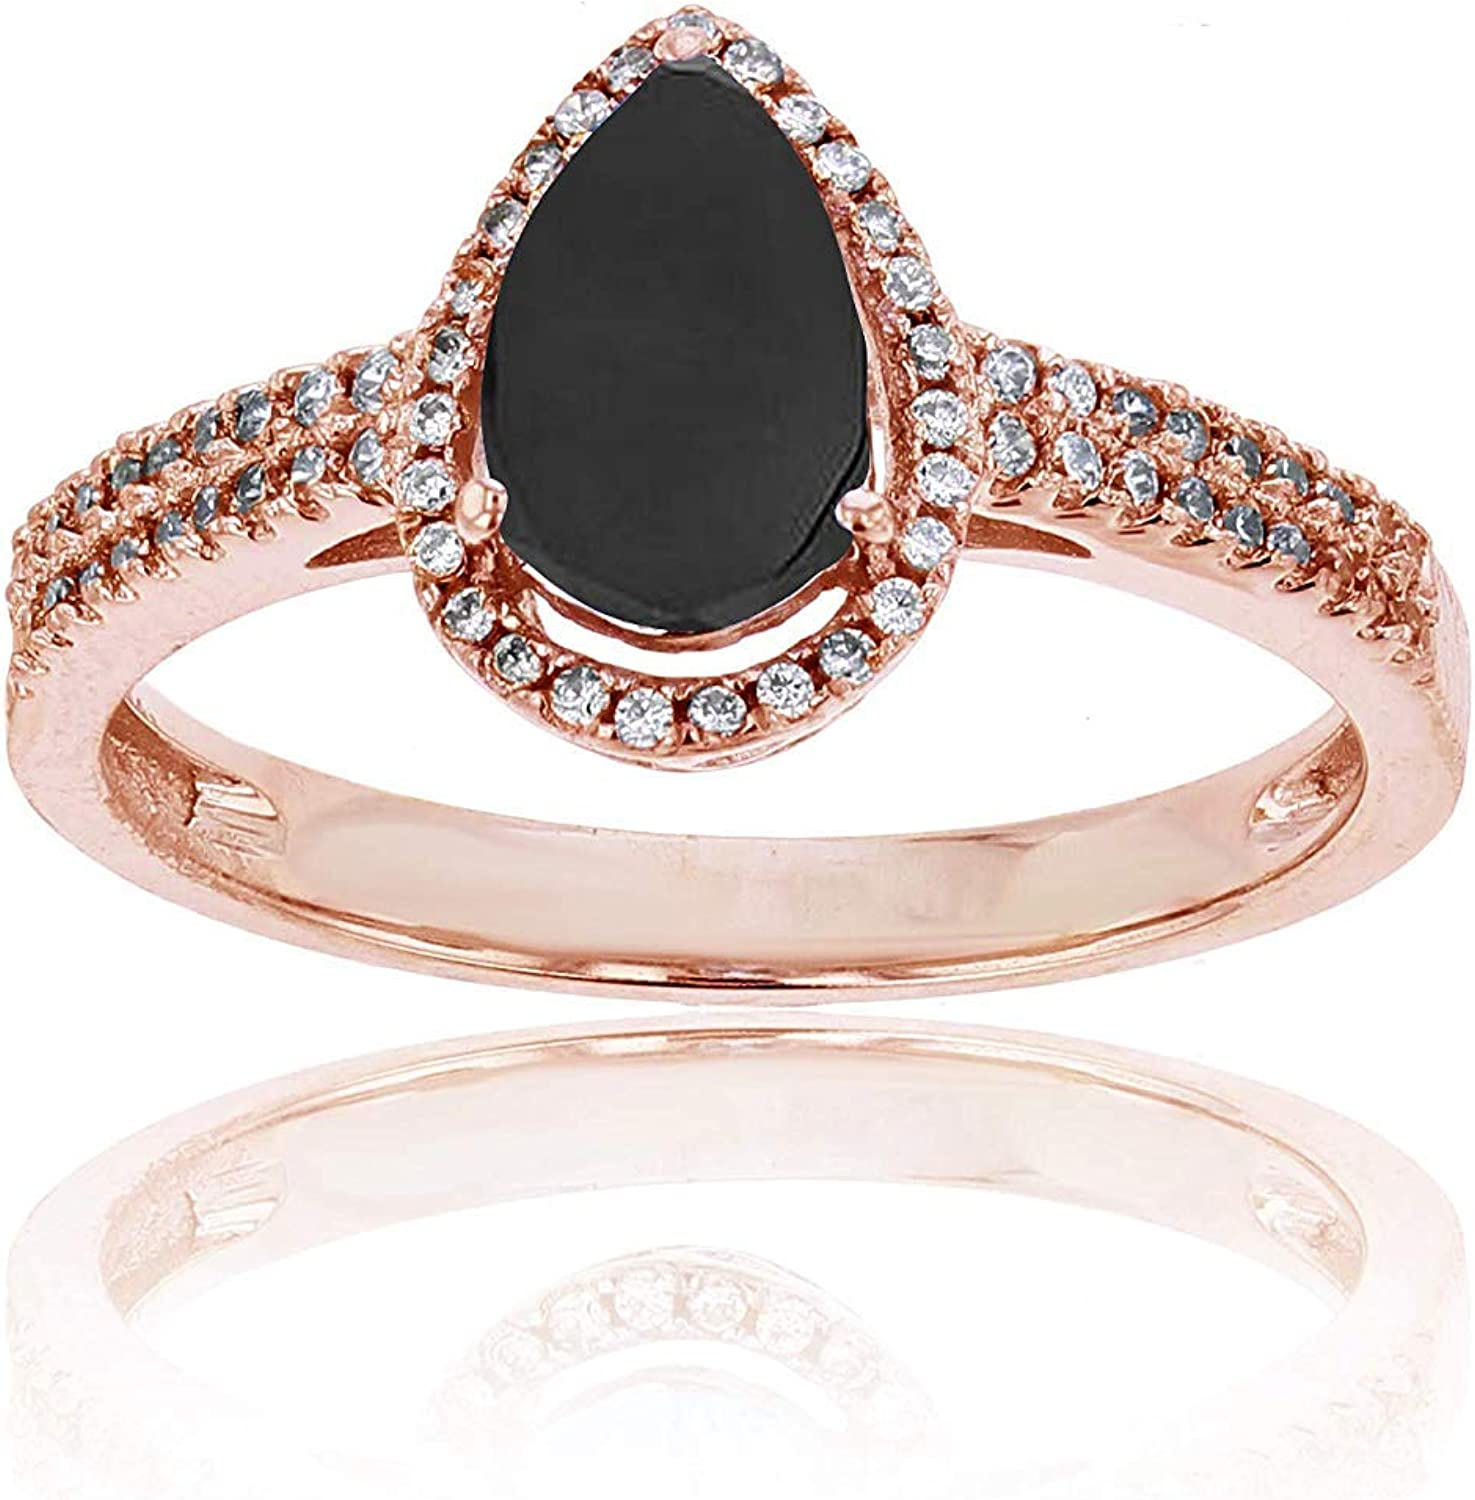 2Ct Oval-Cut Dedicated Pink Diamond Halo Engagement Ring 14k Rose Gold Over